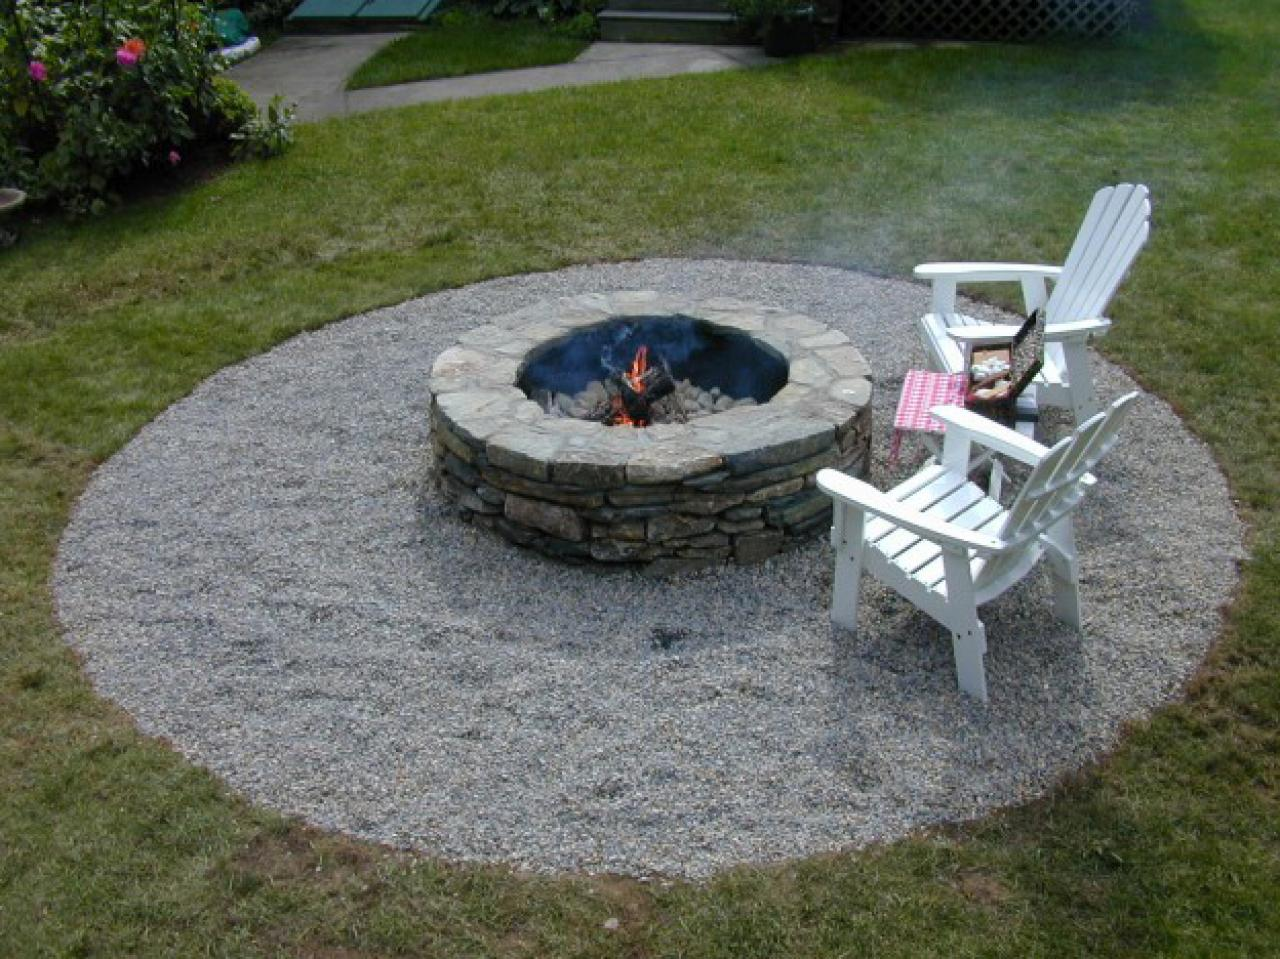 How To Build A Fire Pit: Cost Of Materials & Practical Tips ...